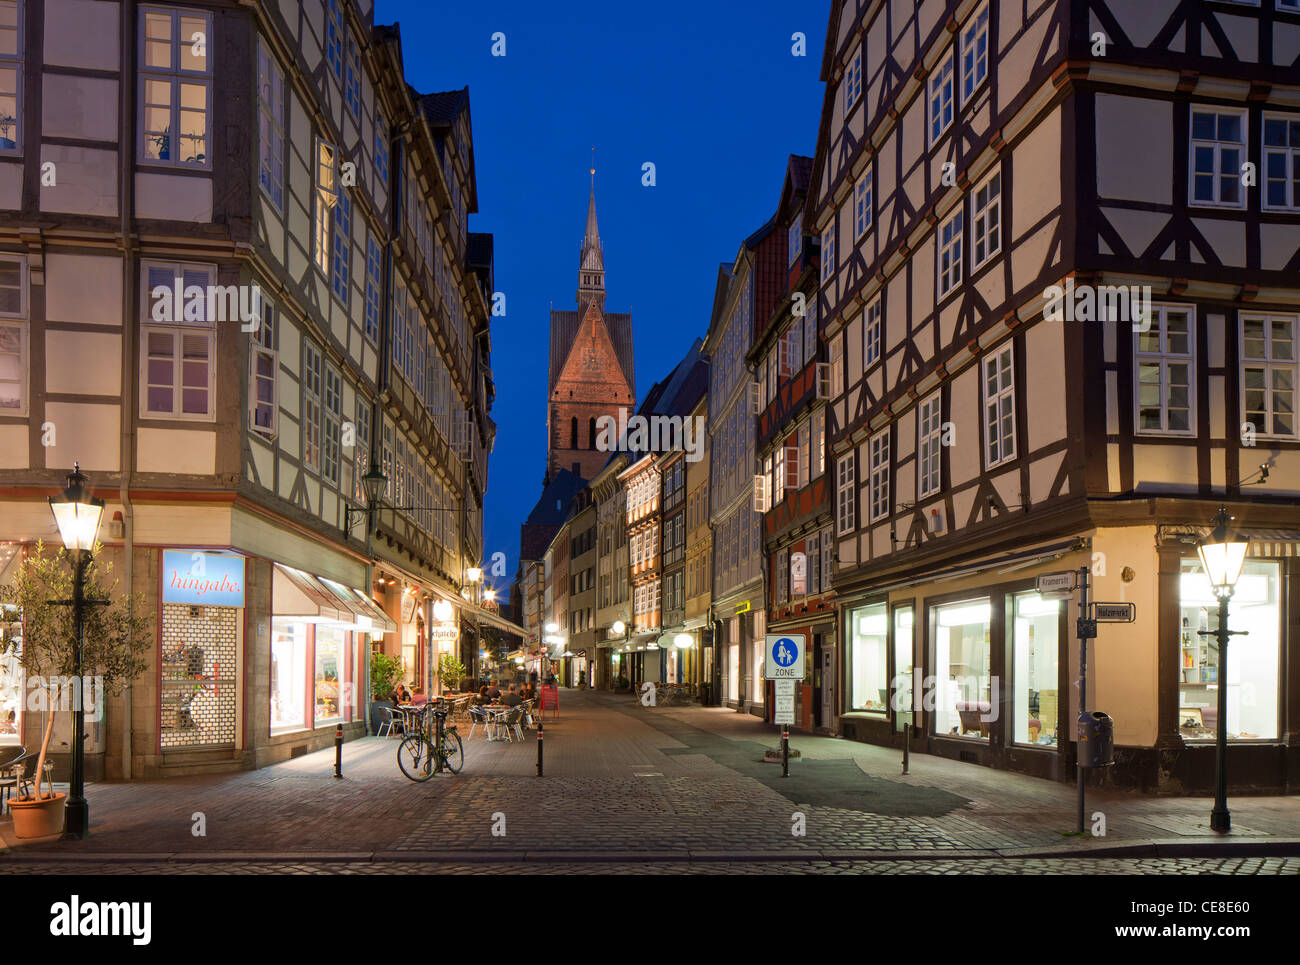 Kramerstraße with half-timbered houses and the Market Church / Marktkirche at night, Hannover, Germany - Stock Image